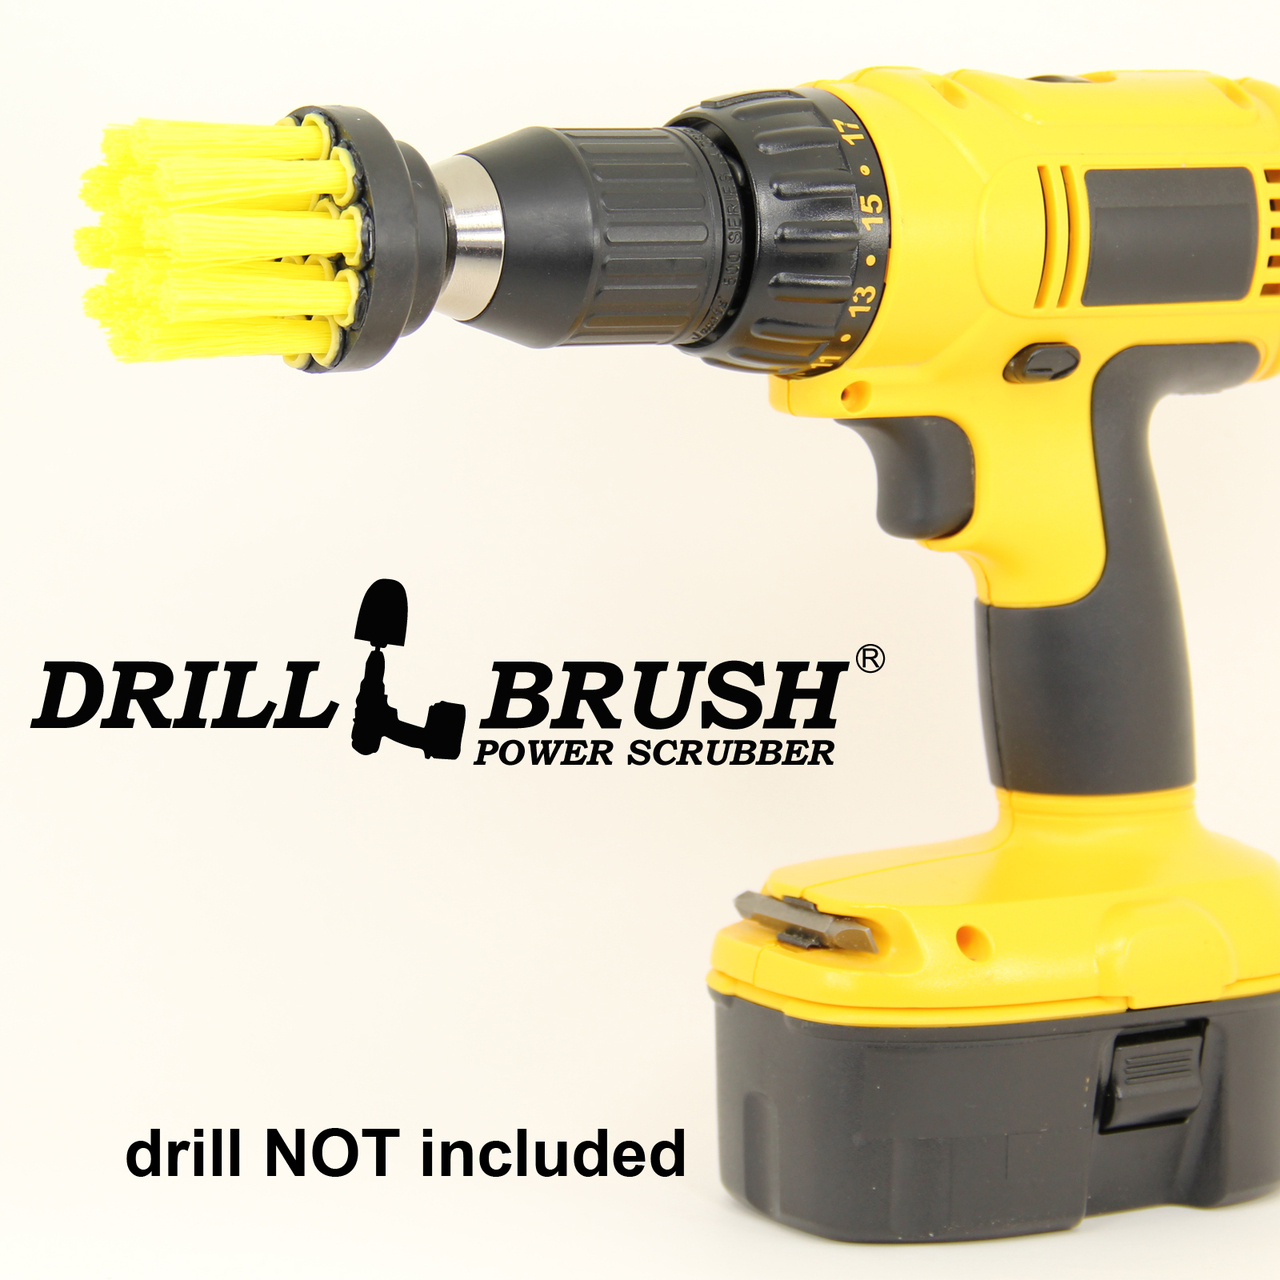 2 inch Long Bristle Yellow Bathroom Scrub Brush fits Power Drill